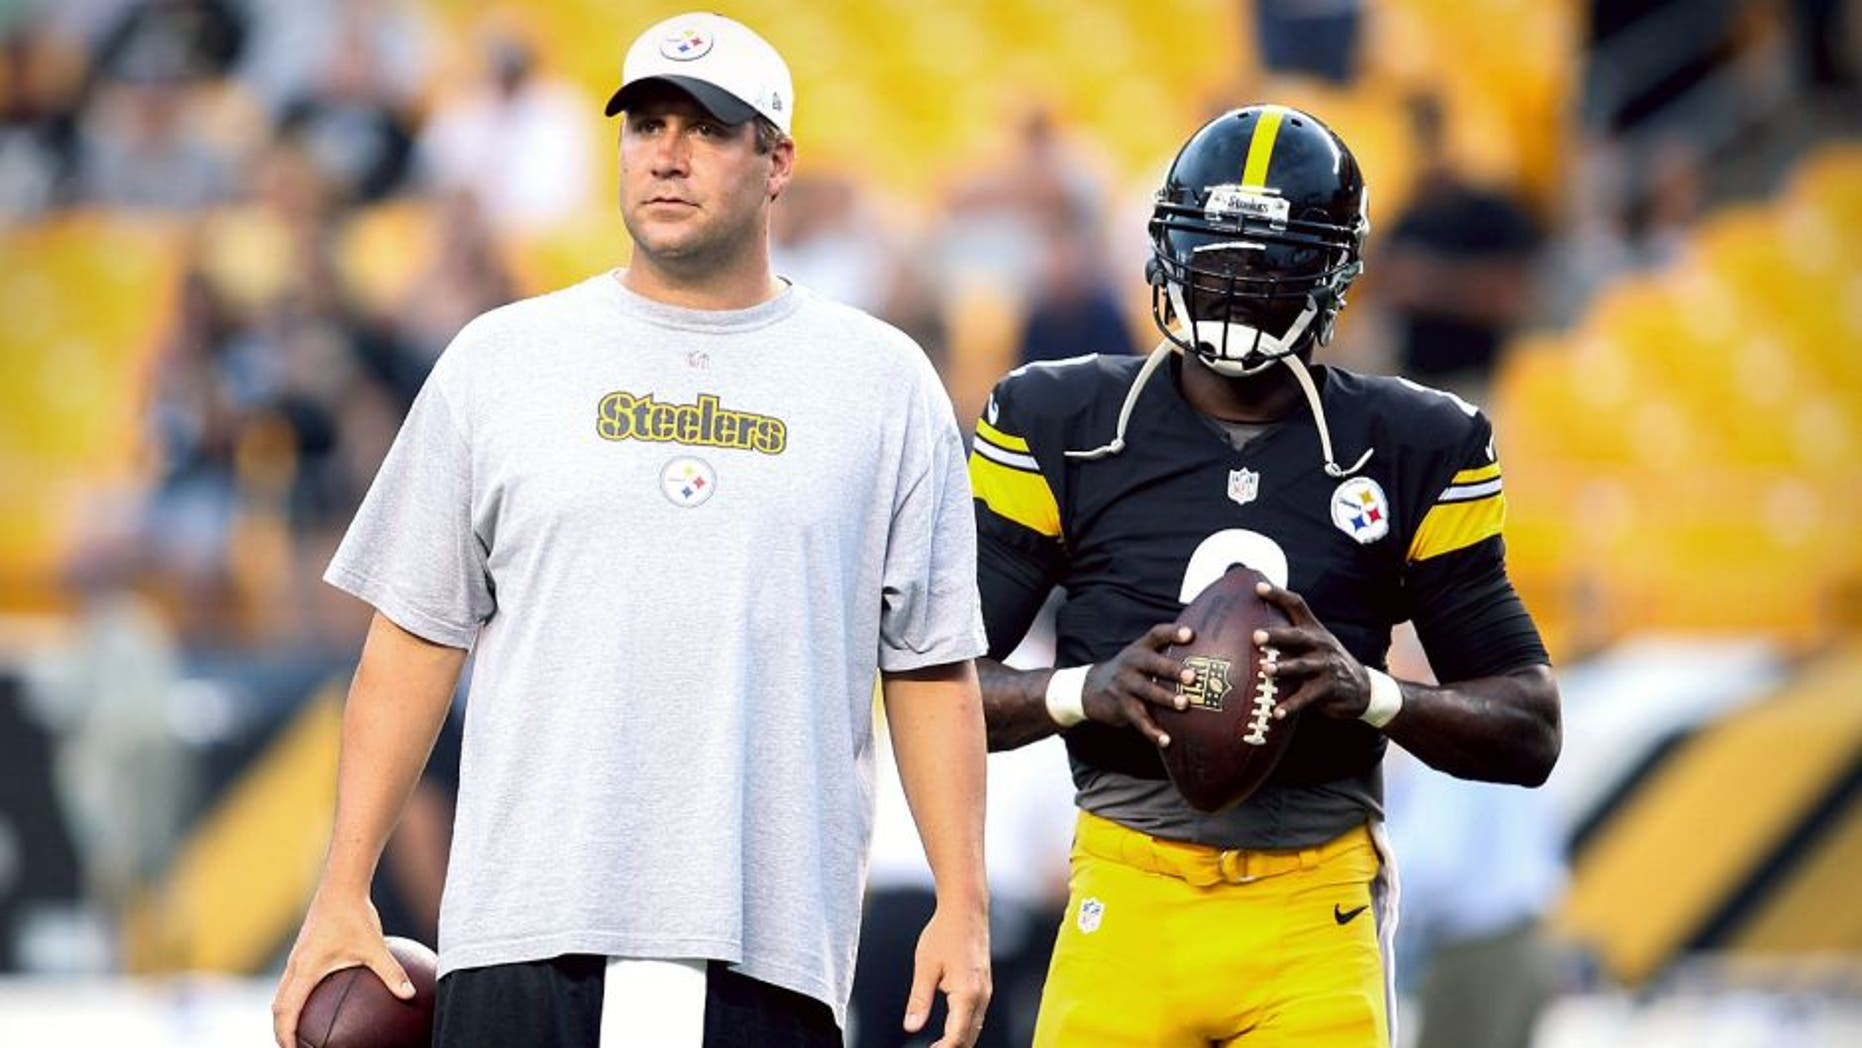 Sep 3, 2015; Pittsburgh, PA, USA; Pittsburgh Steelers quarterbacks Ben Roethlisberger (L) and Michael Vick (R) (2) on the field before playing the Carolina Panthers at Heinz Field. Mandatory Credit: Charles LeClaire-USA TODAY Sports